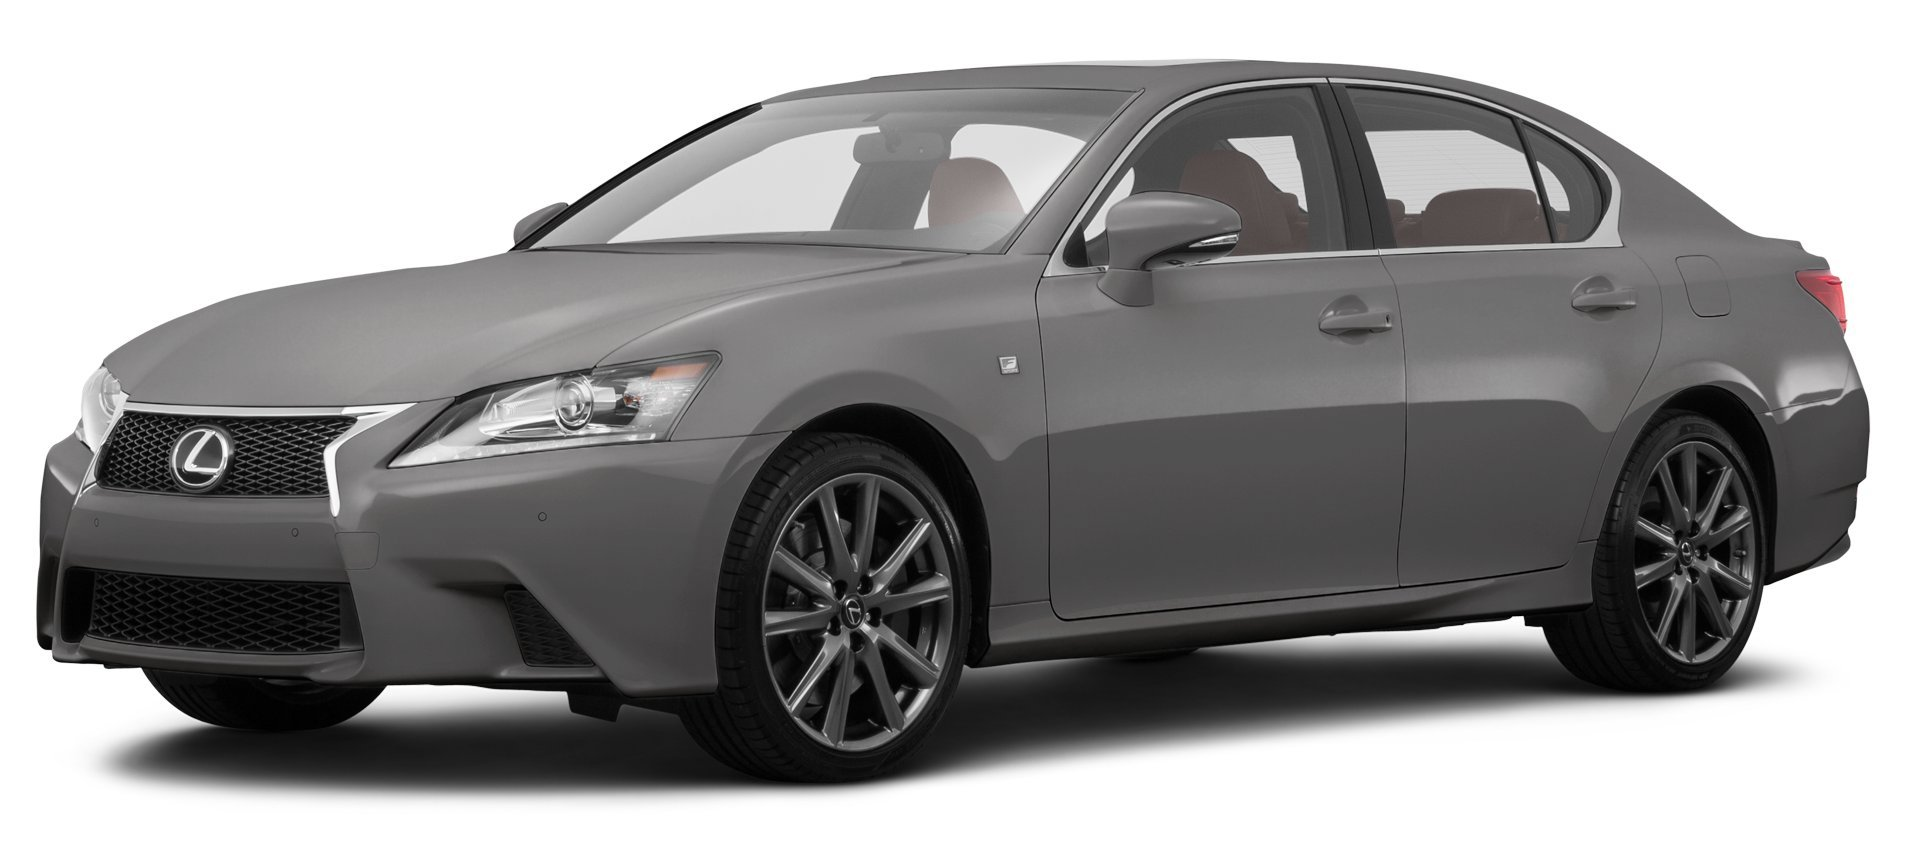 Amazon.com: 2015 Lexus GS350 Reviews, Images, and Specs: Vehicles